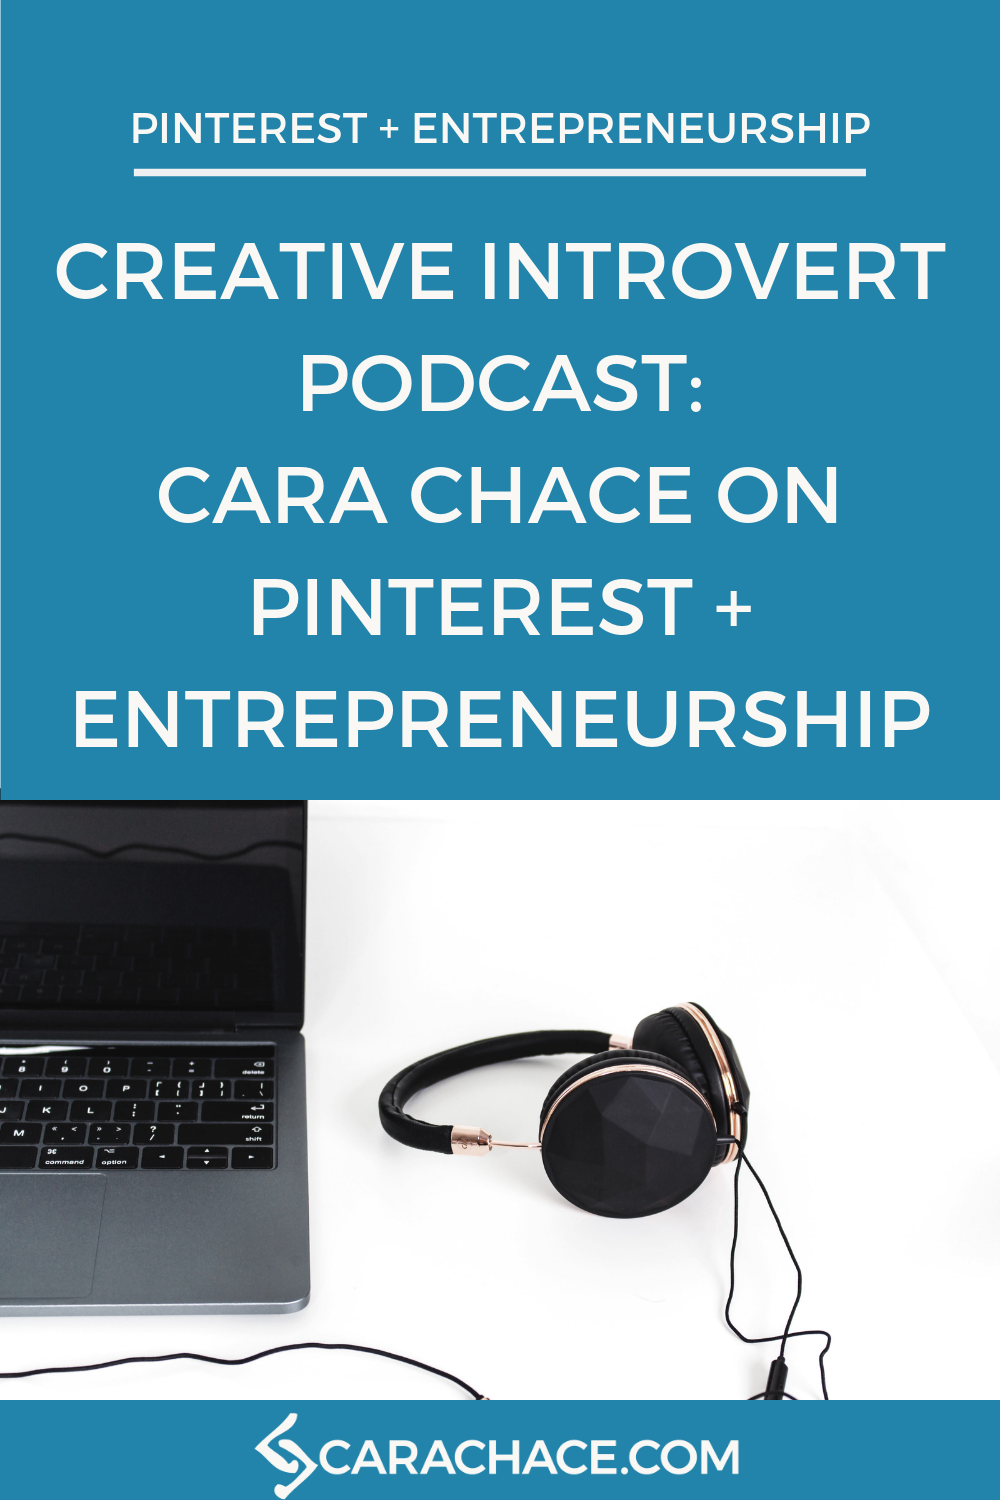 Creative Introvert Podcast Pin 1.png